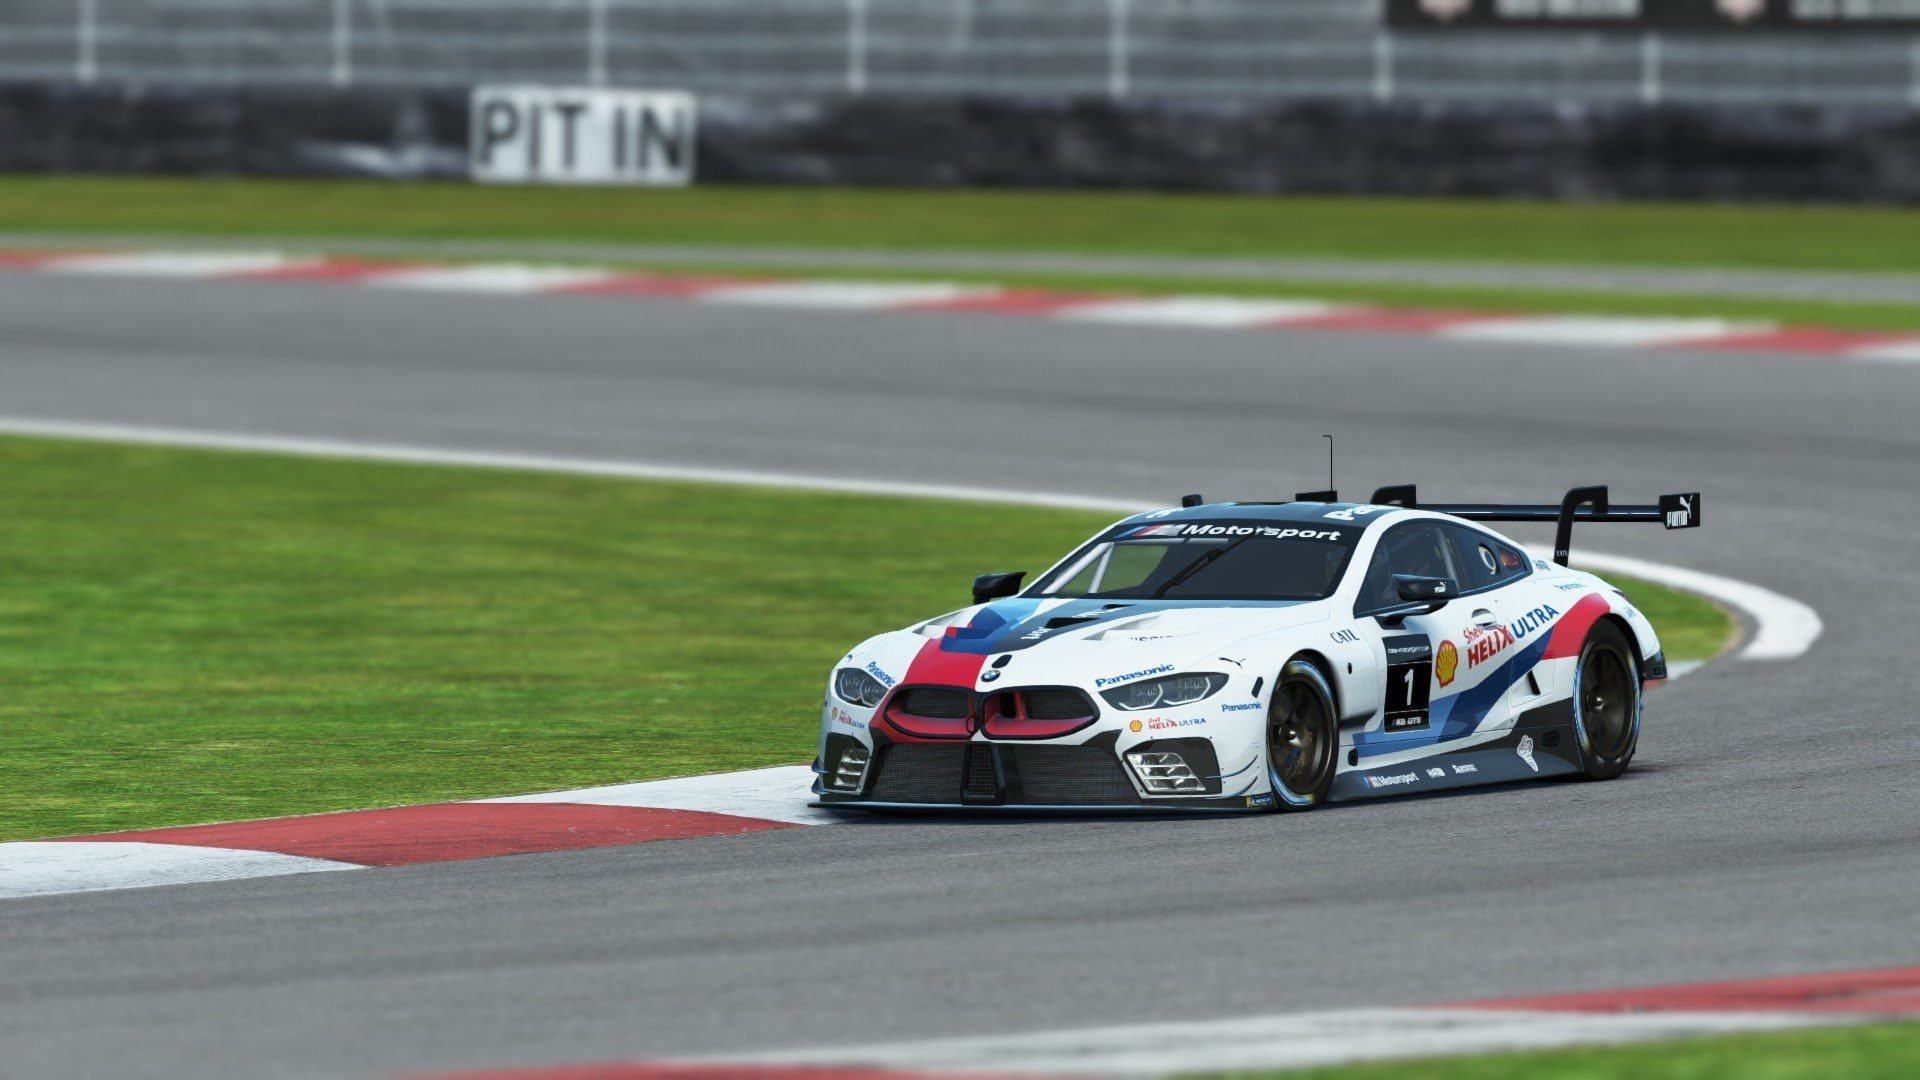 Cars Hd Wallpapers 1080p For Pc Bmw Bmw M8 Gte Race Car To Make Gaming Debut In Rfactor 2